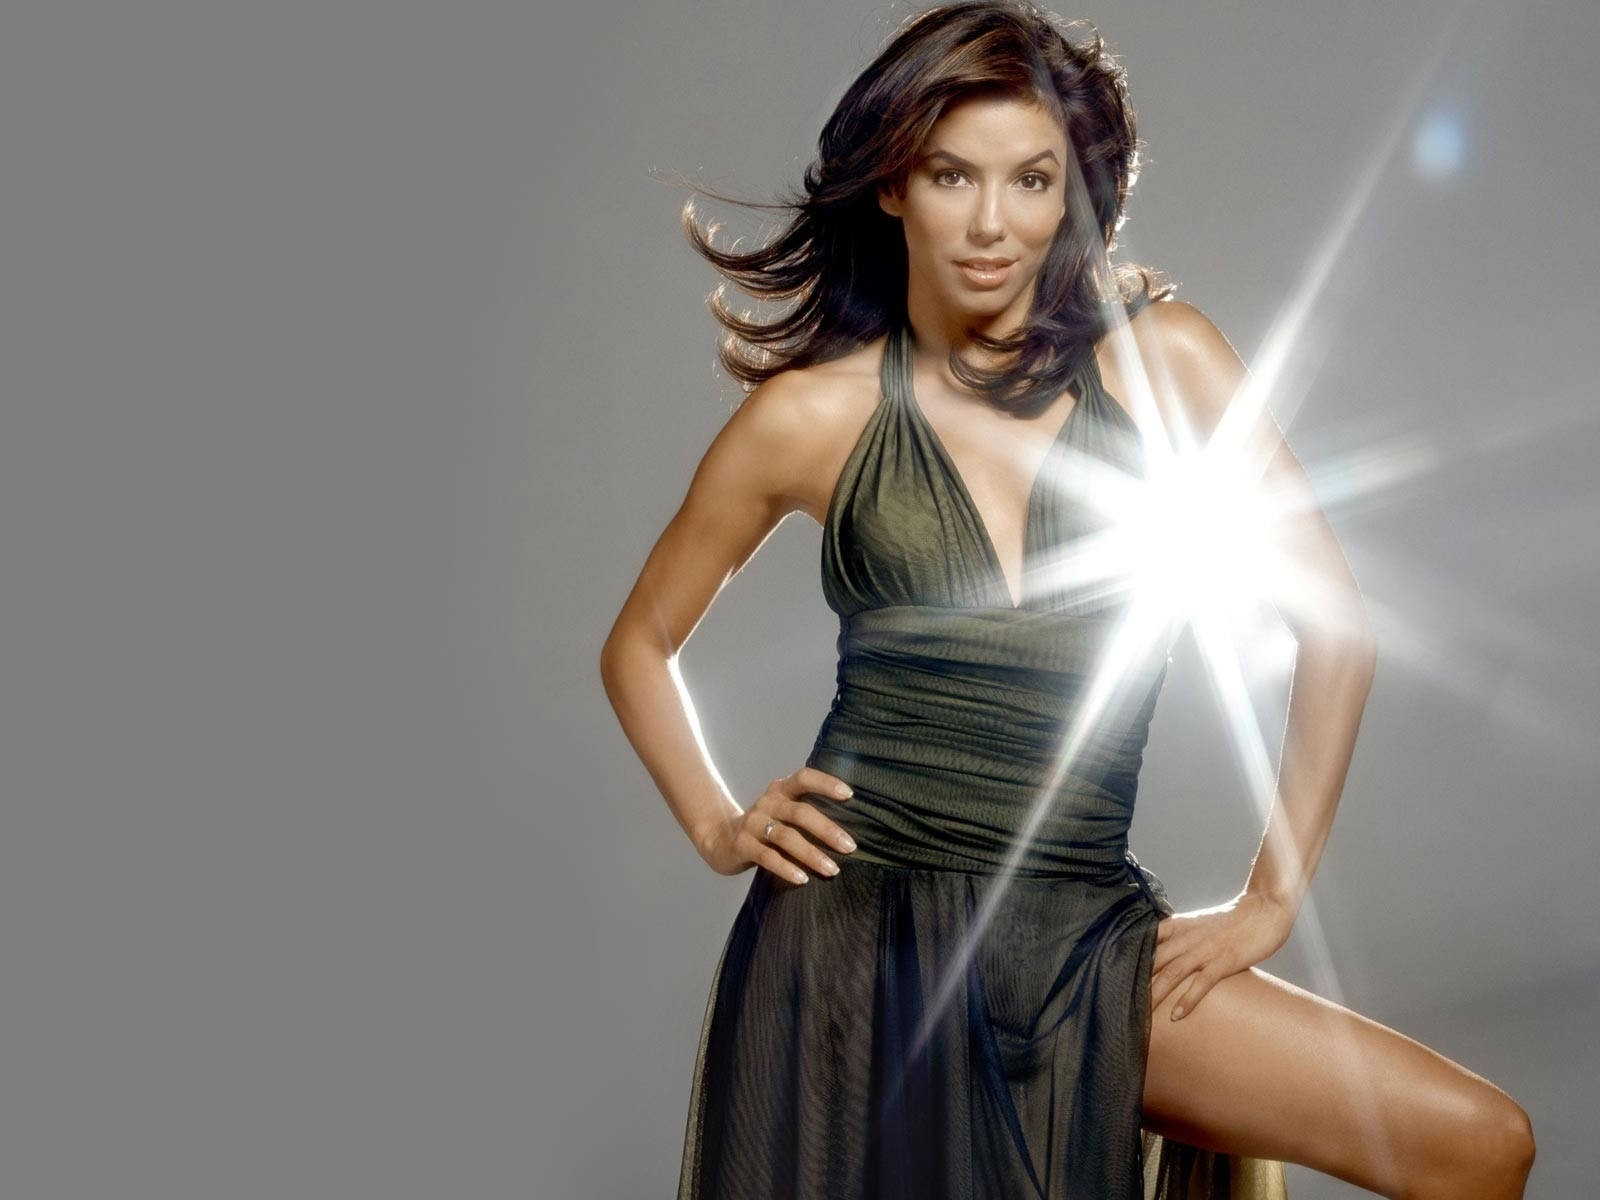 Wallpaper di Eva Longoria Parker, la star di Desperate Housewives è considerata la più sexy tra le sue colleghe